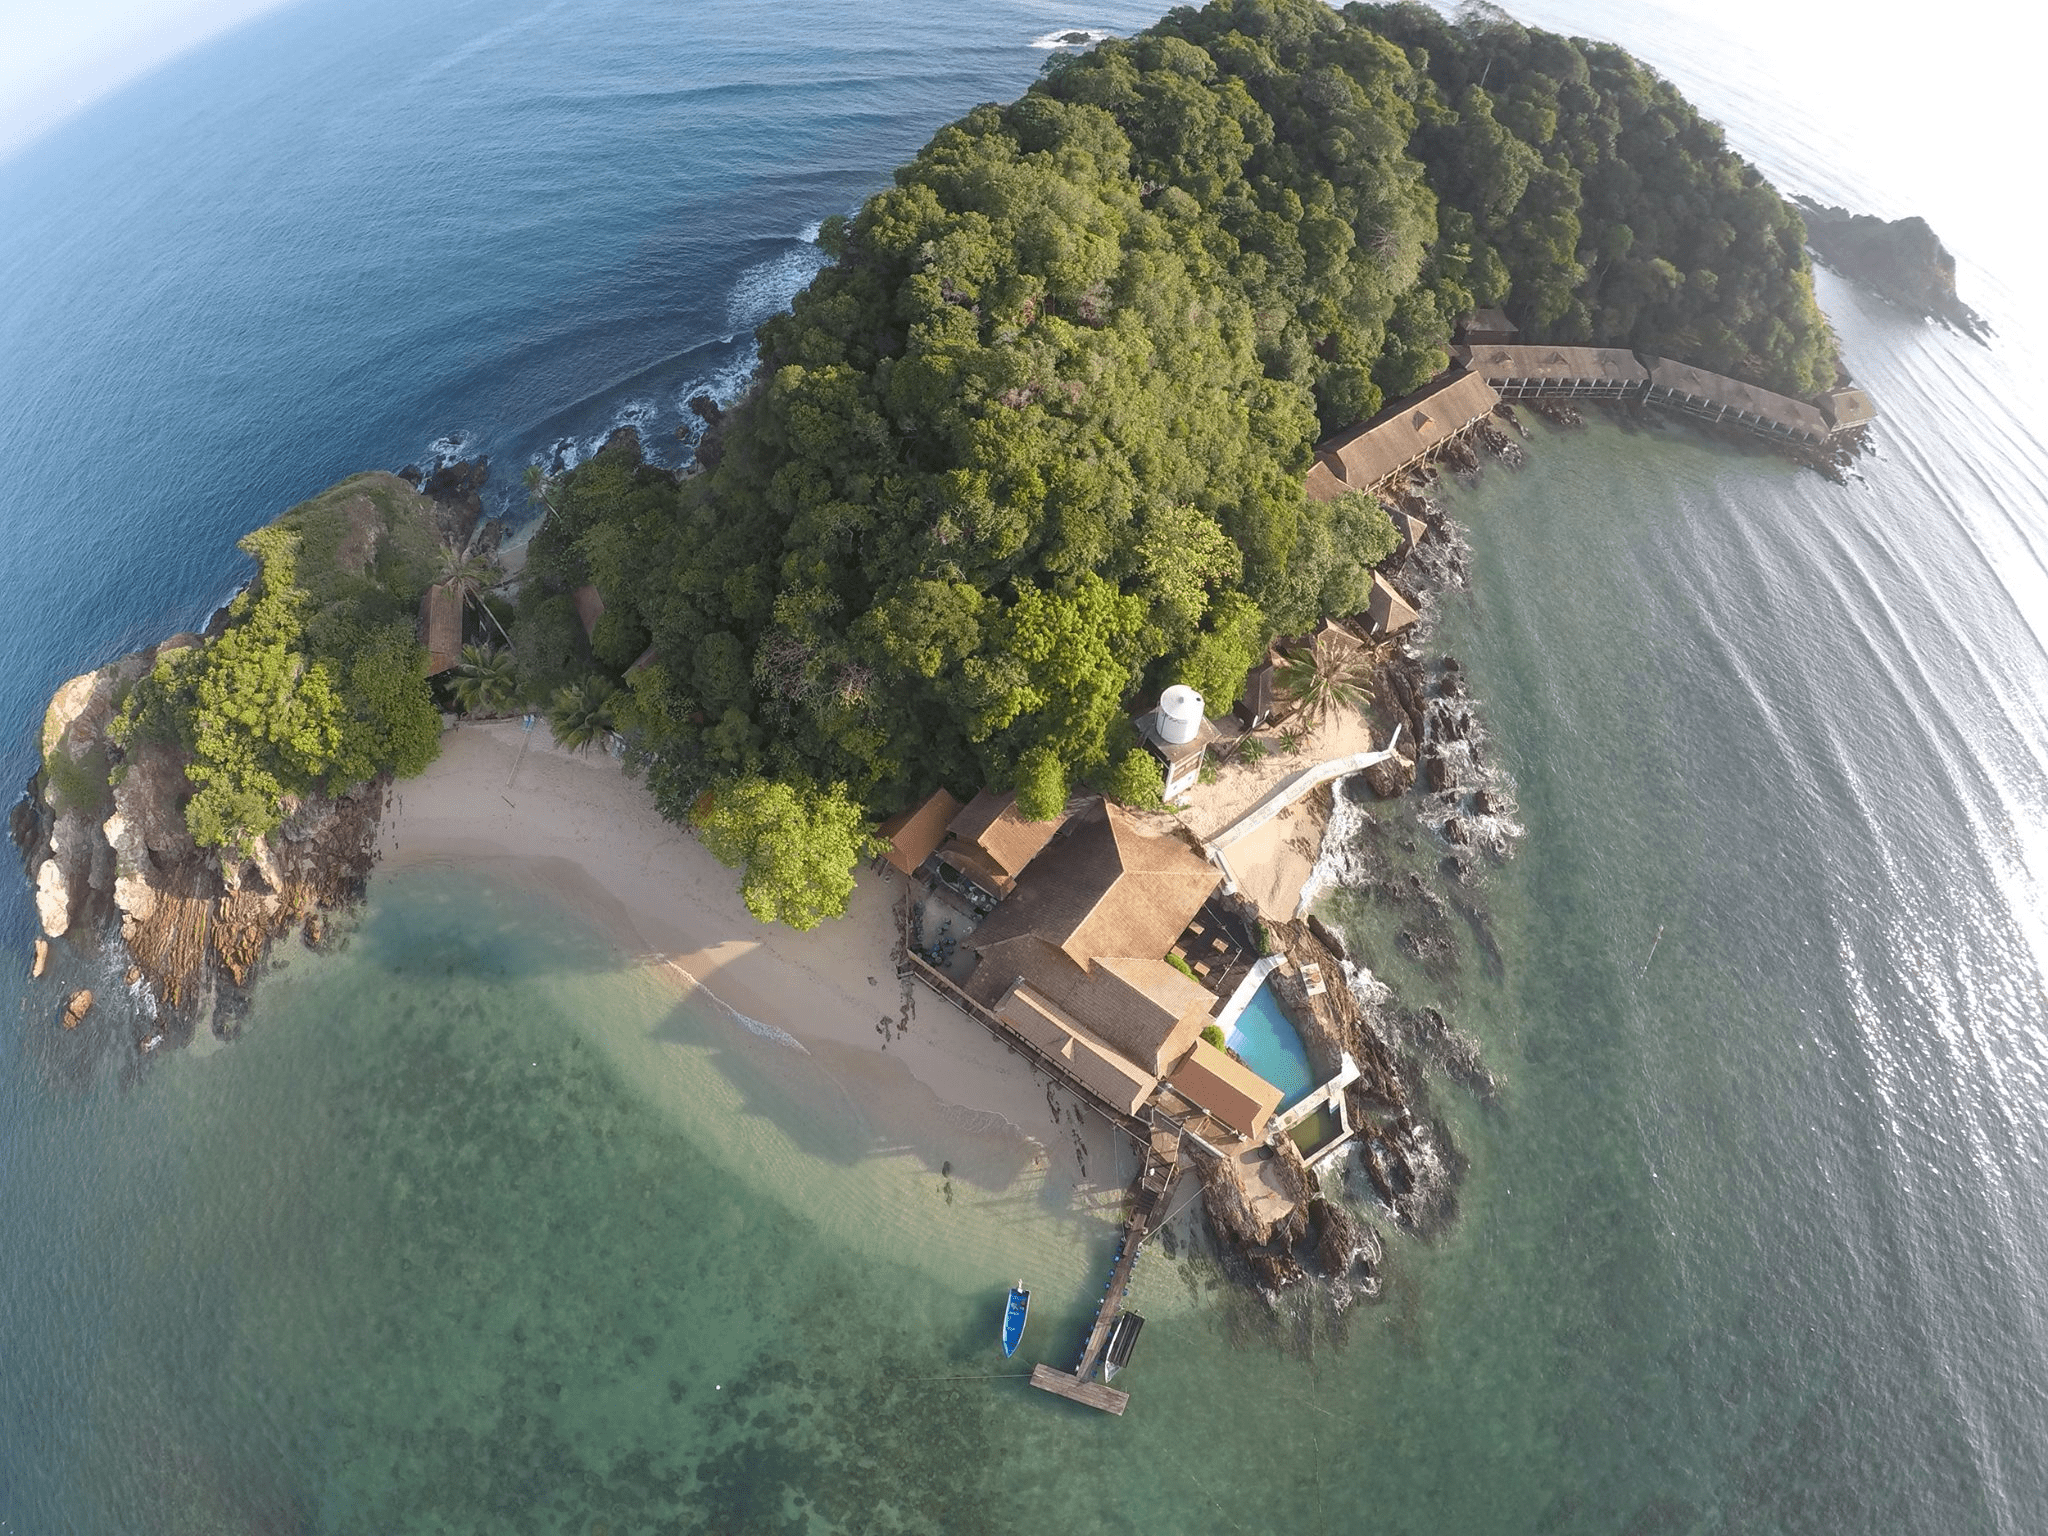 Gem Island Resort and Spa is located in a marine conservation park in Malaysia that has stunning underwater seascapes of coral and marine life. There are a total of 45 seaside villas that hug the surrounding coastline and come equipped with a balcony and swings.